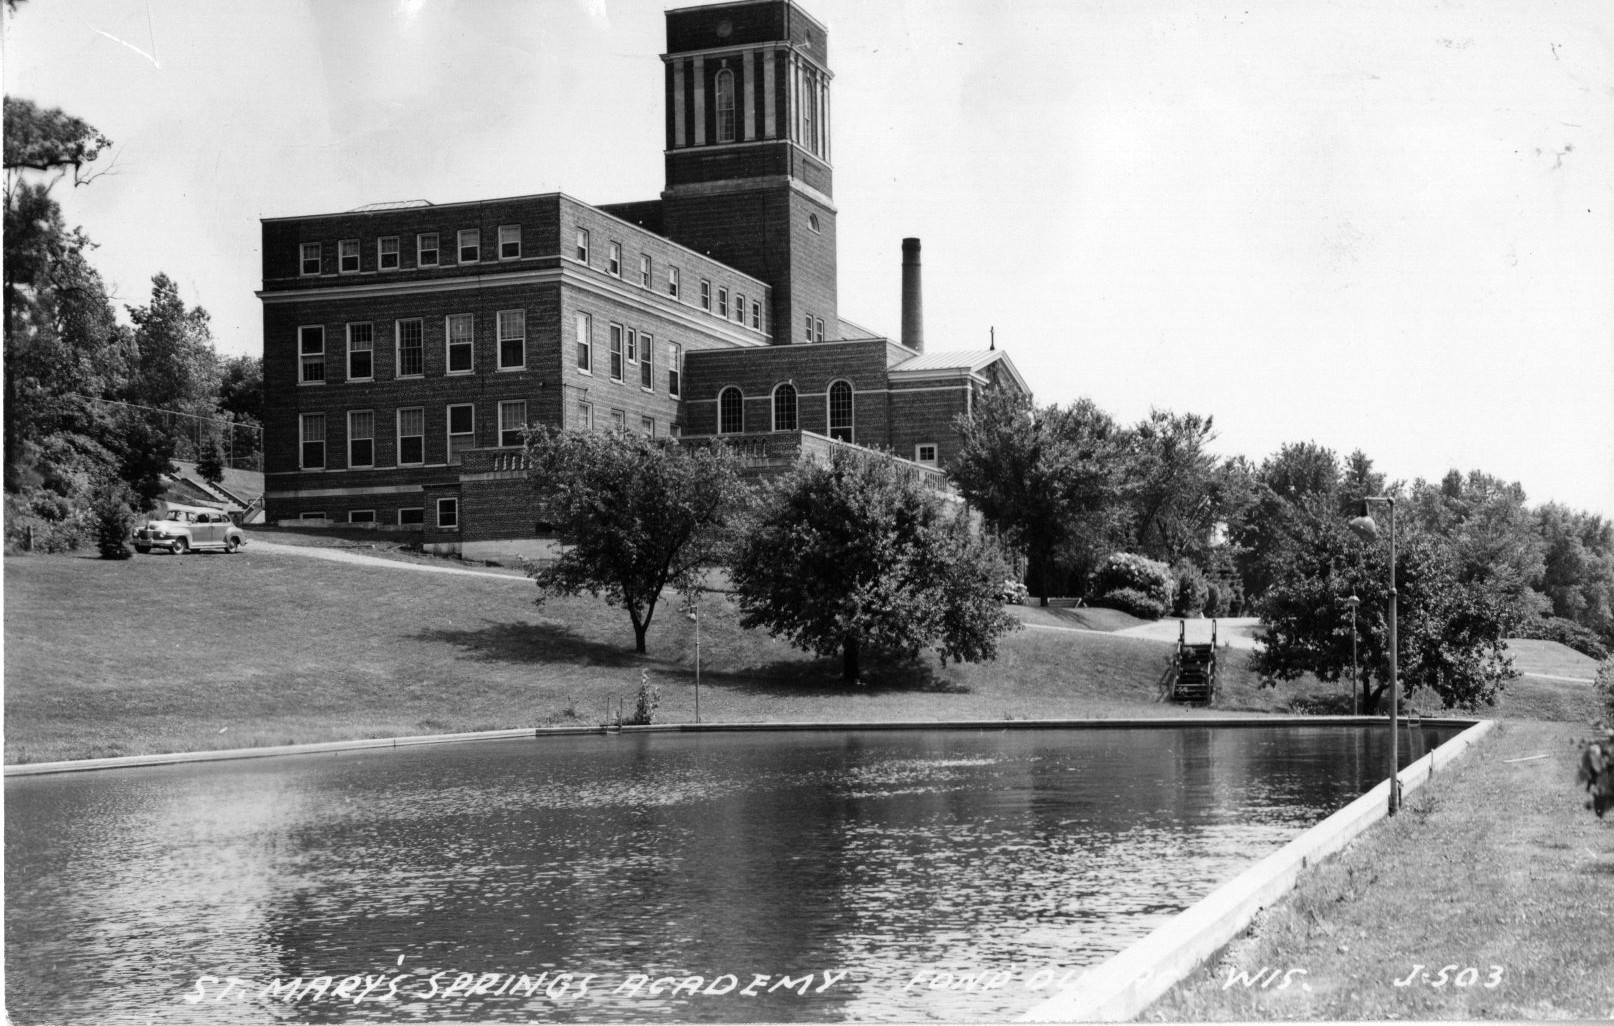 St. Mary's Springs Academy with the swimming pool in the foreground, 1930s.